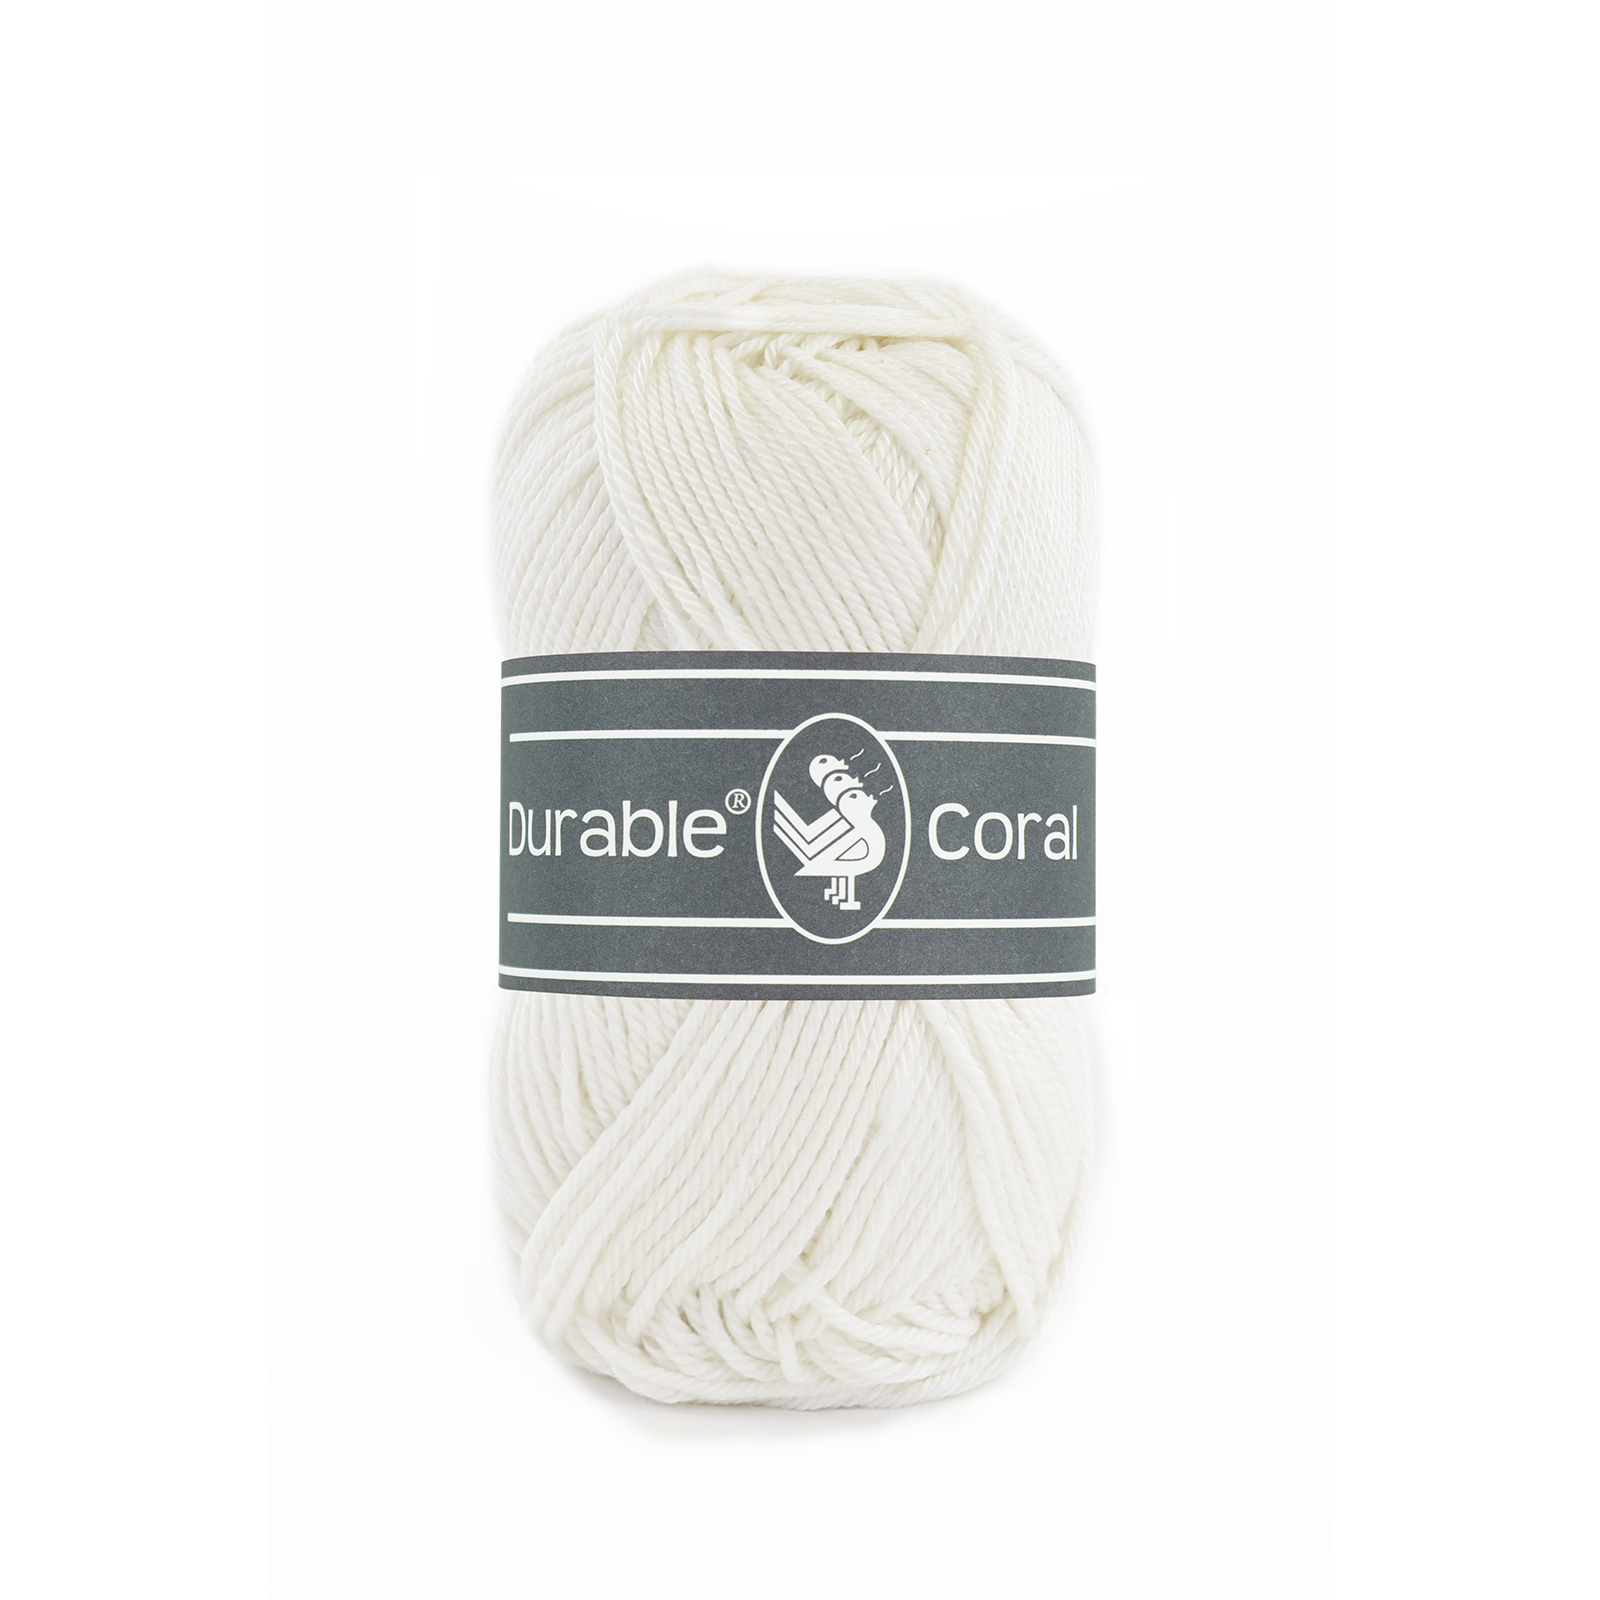 Coral – 326 Ivory